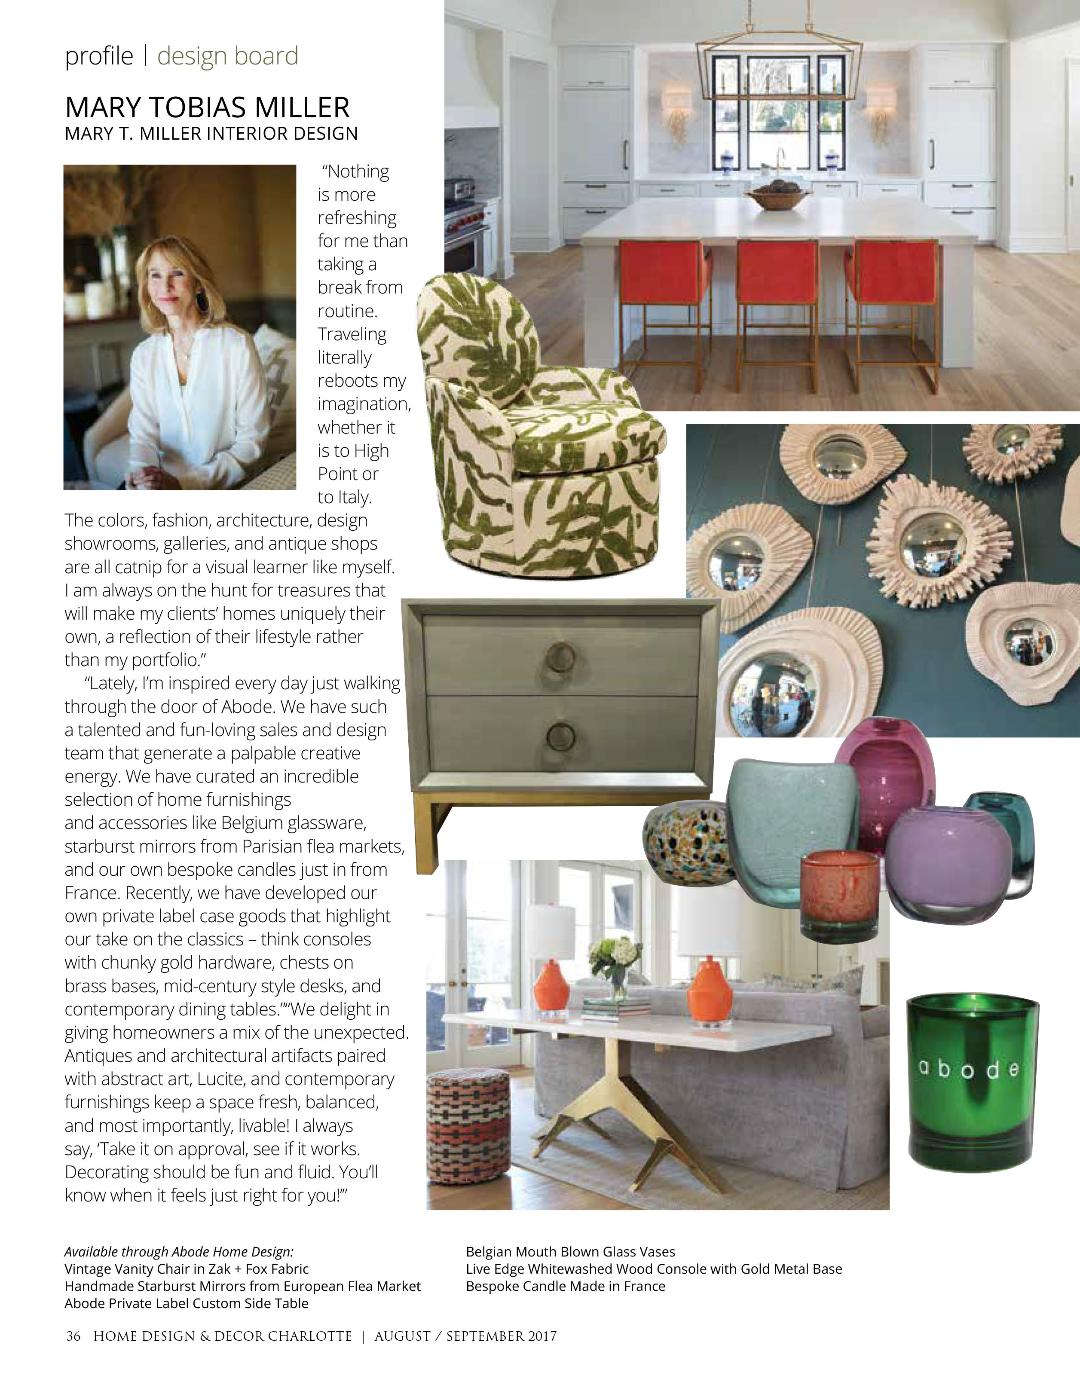 Design Board Profile On Mary Tobias Miller By Home Design U0026 Decor Charlotte